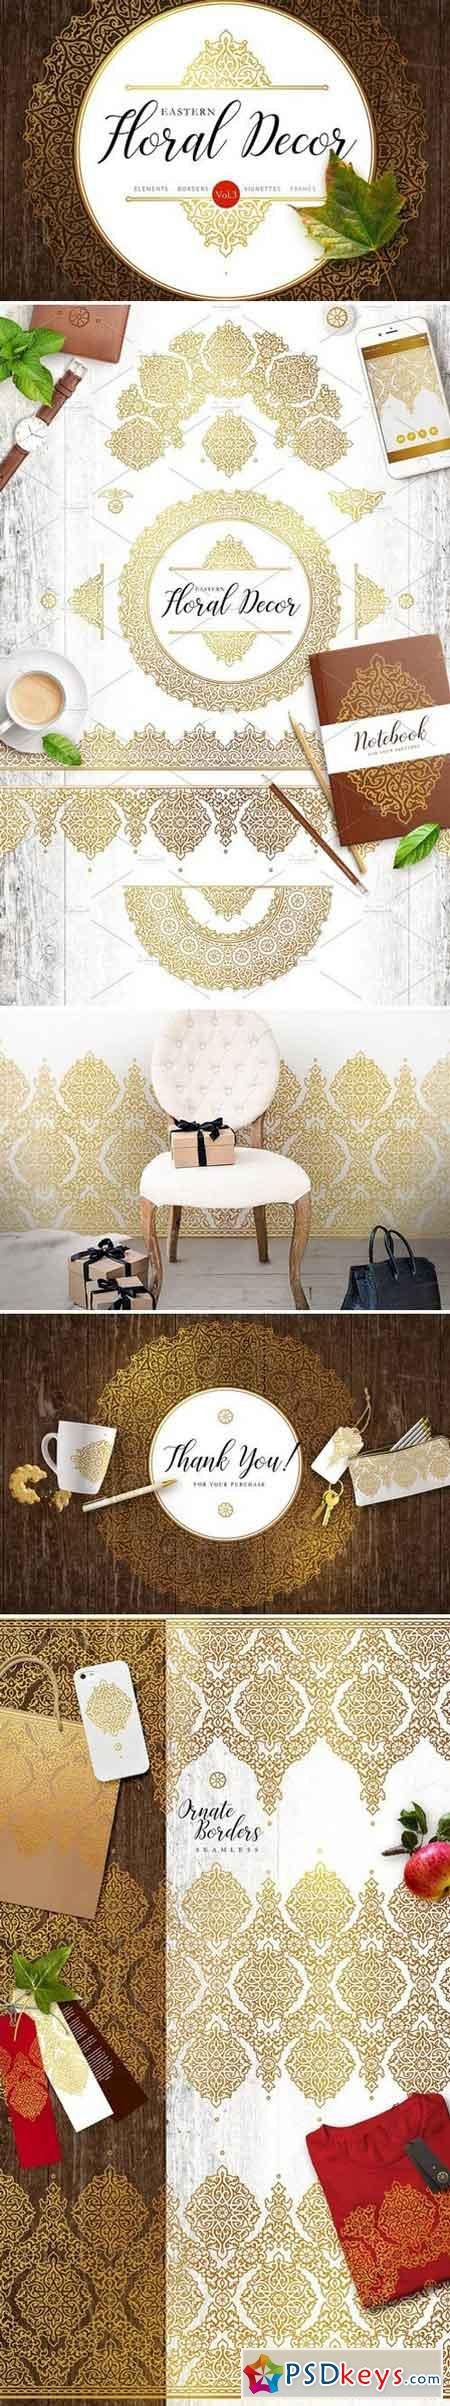 Kit Of Eastern Vector Decor. Vol.3 2171683